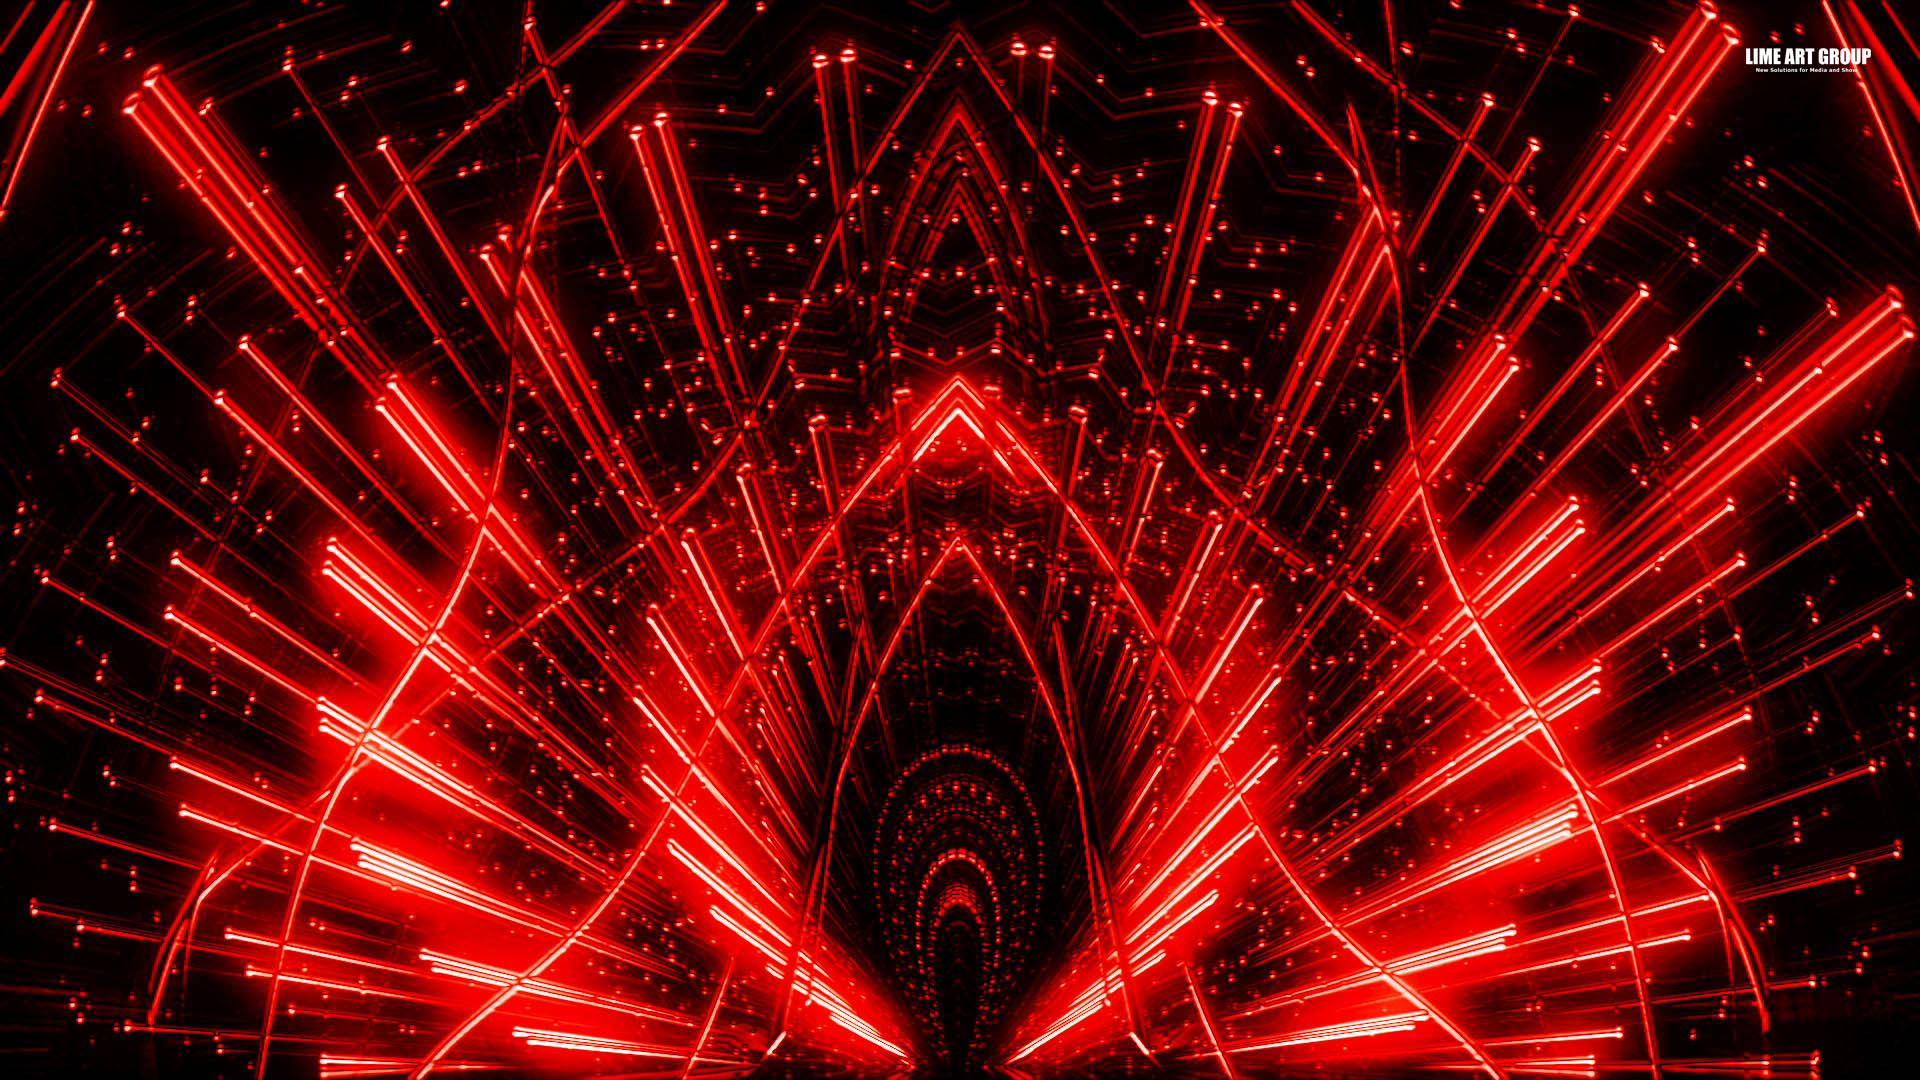 Lovely Red Free Download Vj Loops